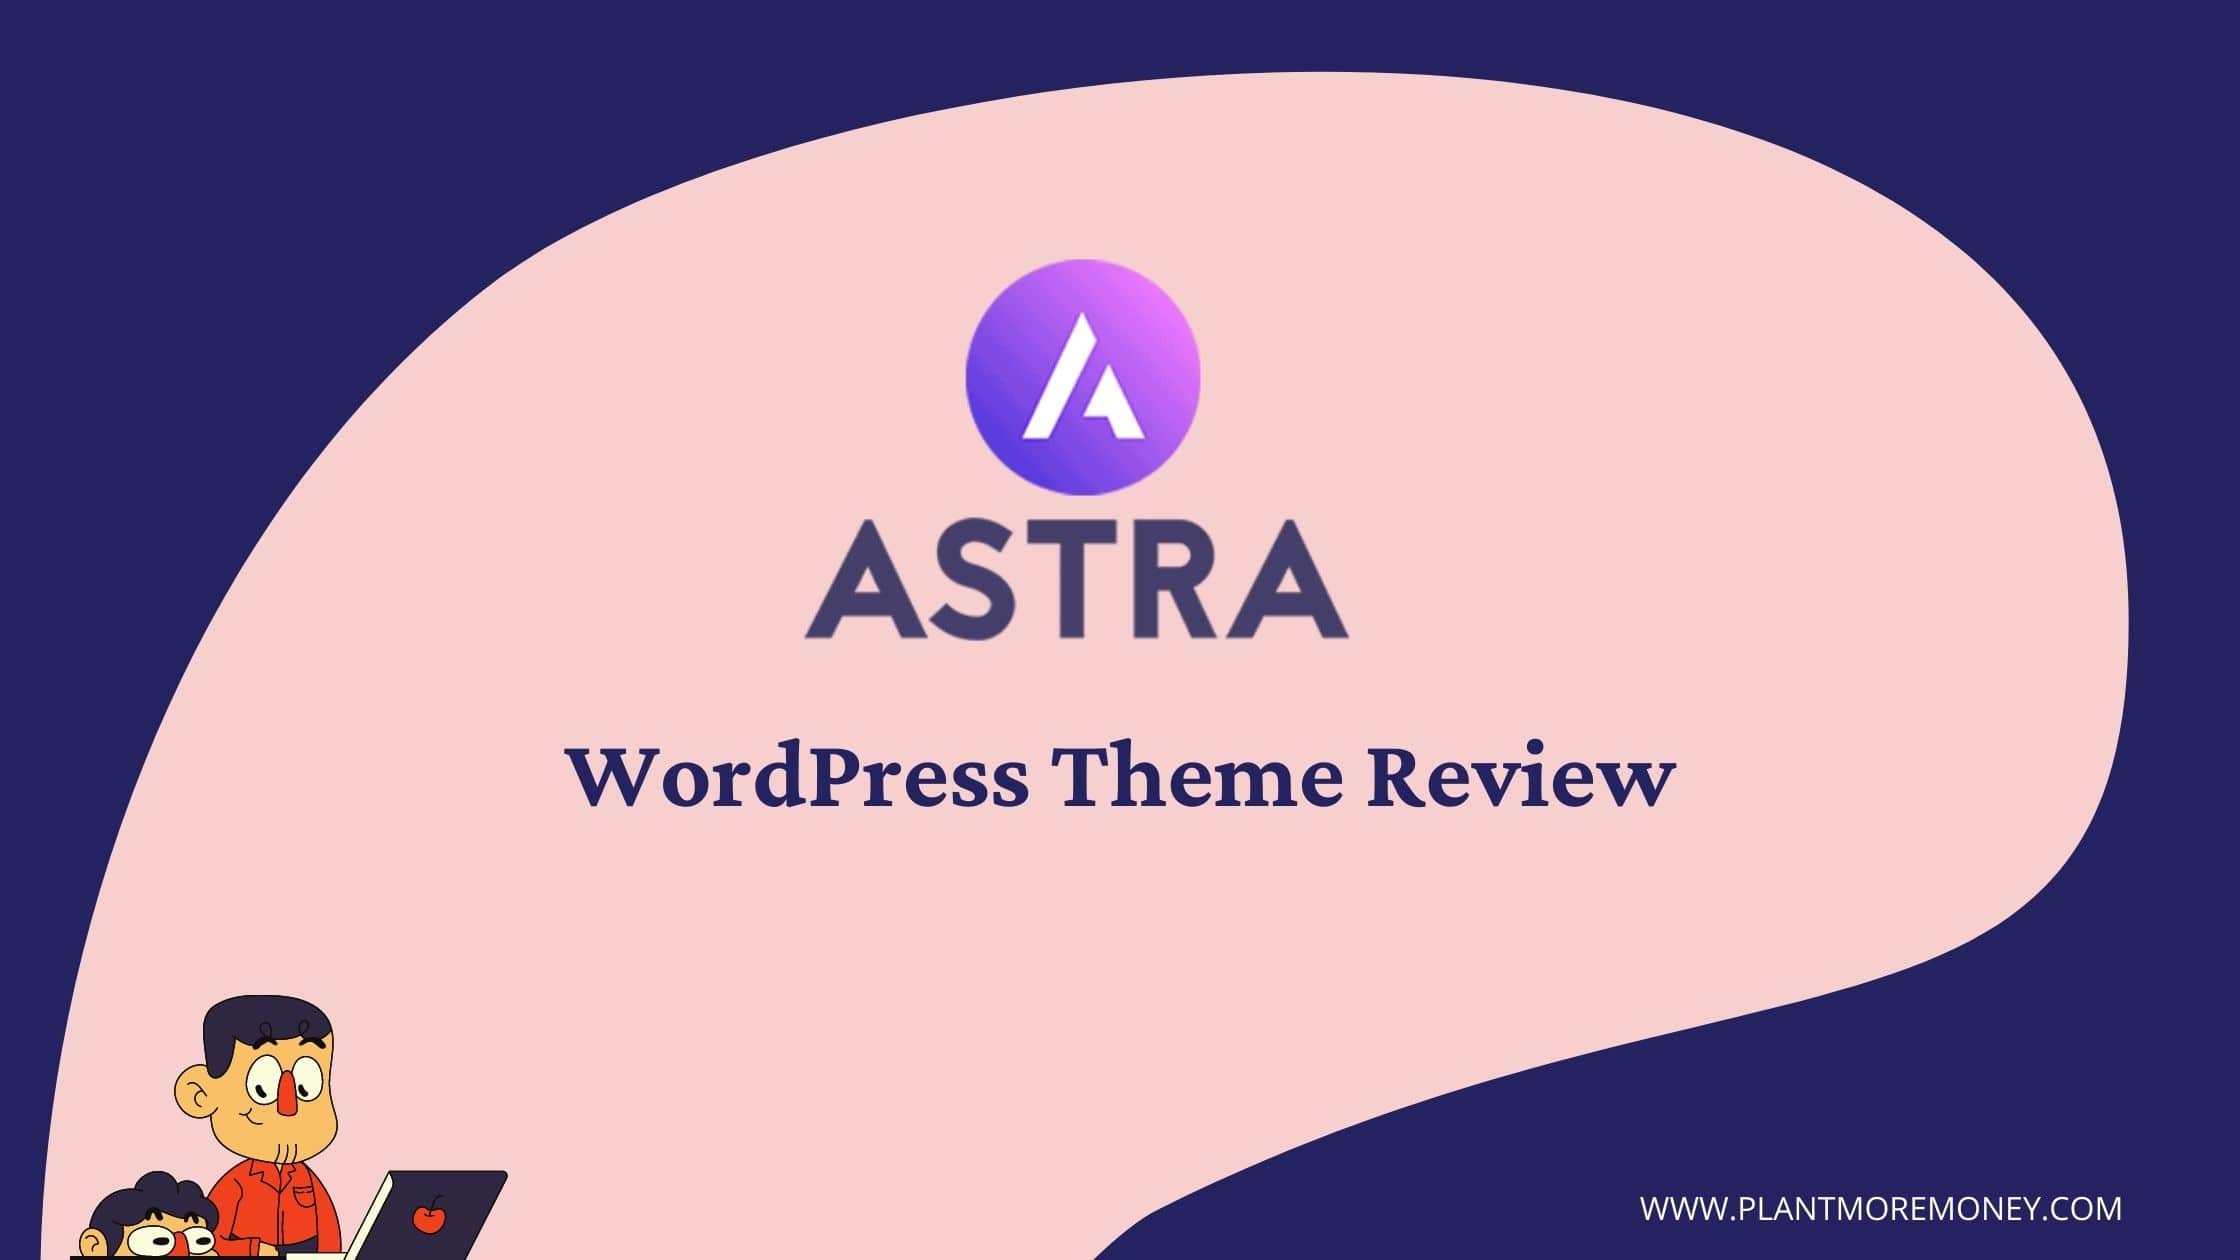 Astra WordPress Theme Review 2021